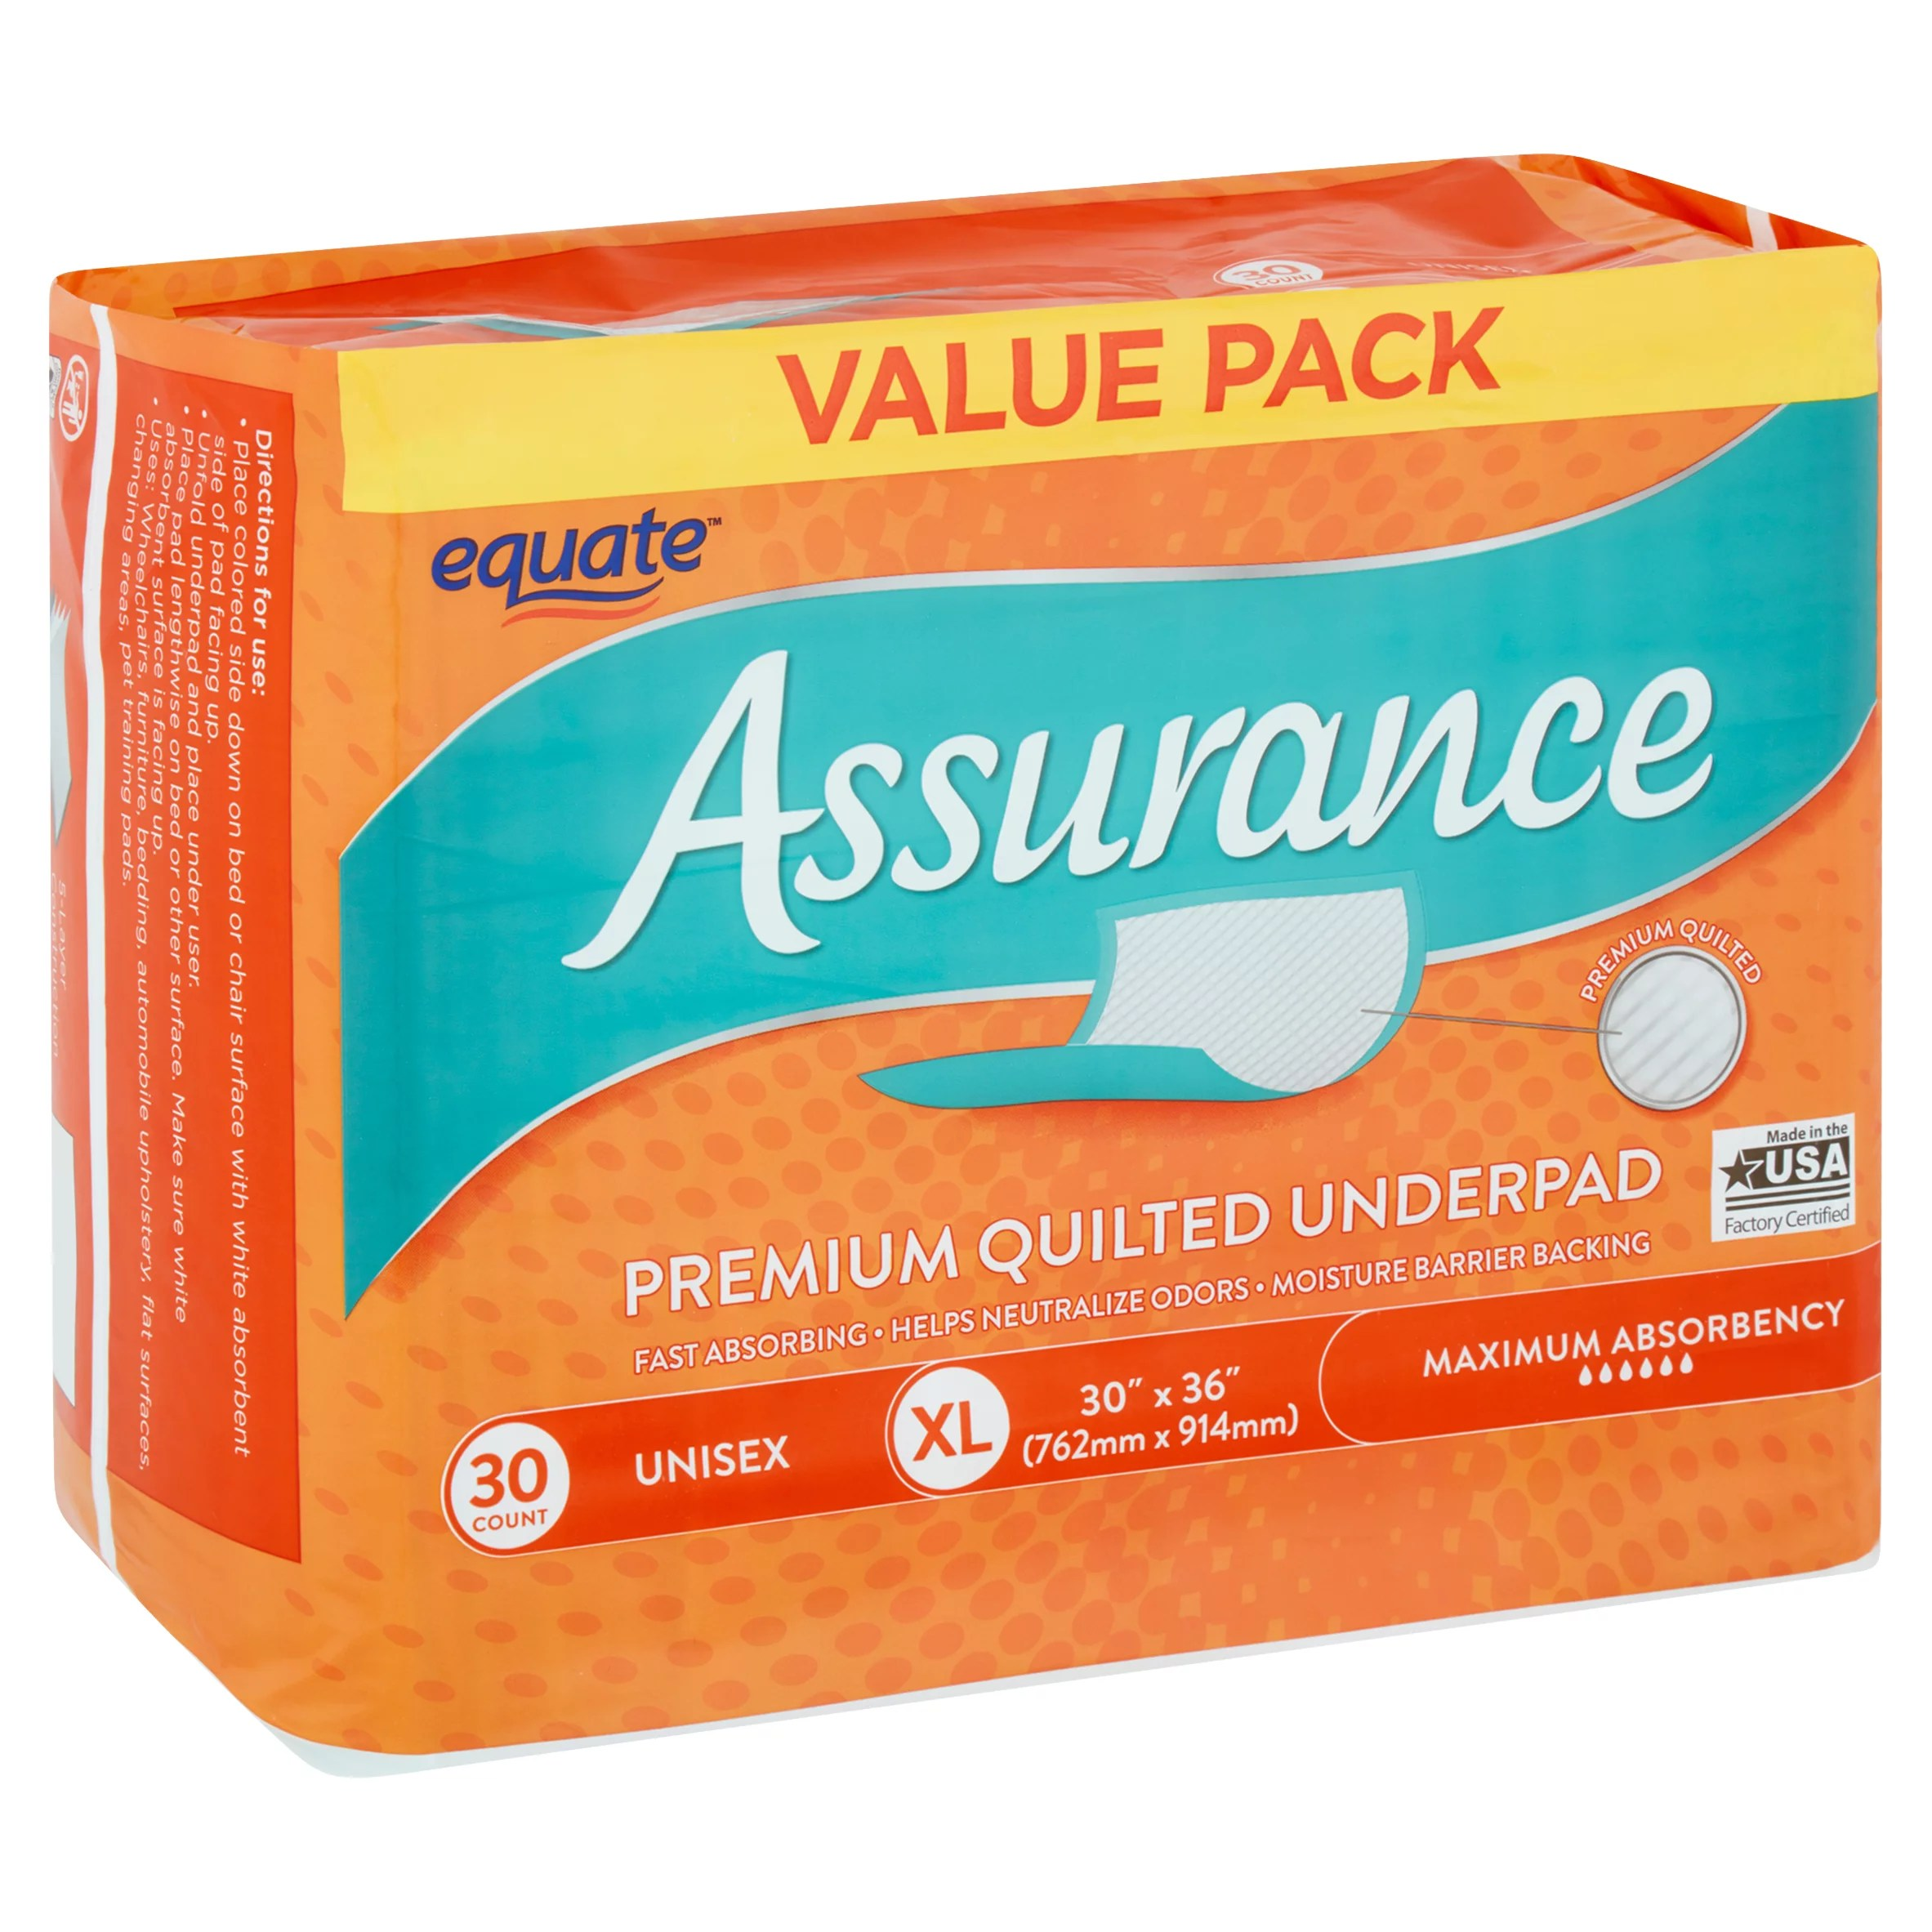 Assurance Garage Location Equate Assurance Maximum Absorbency Unisex Premium Quilted